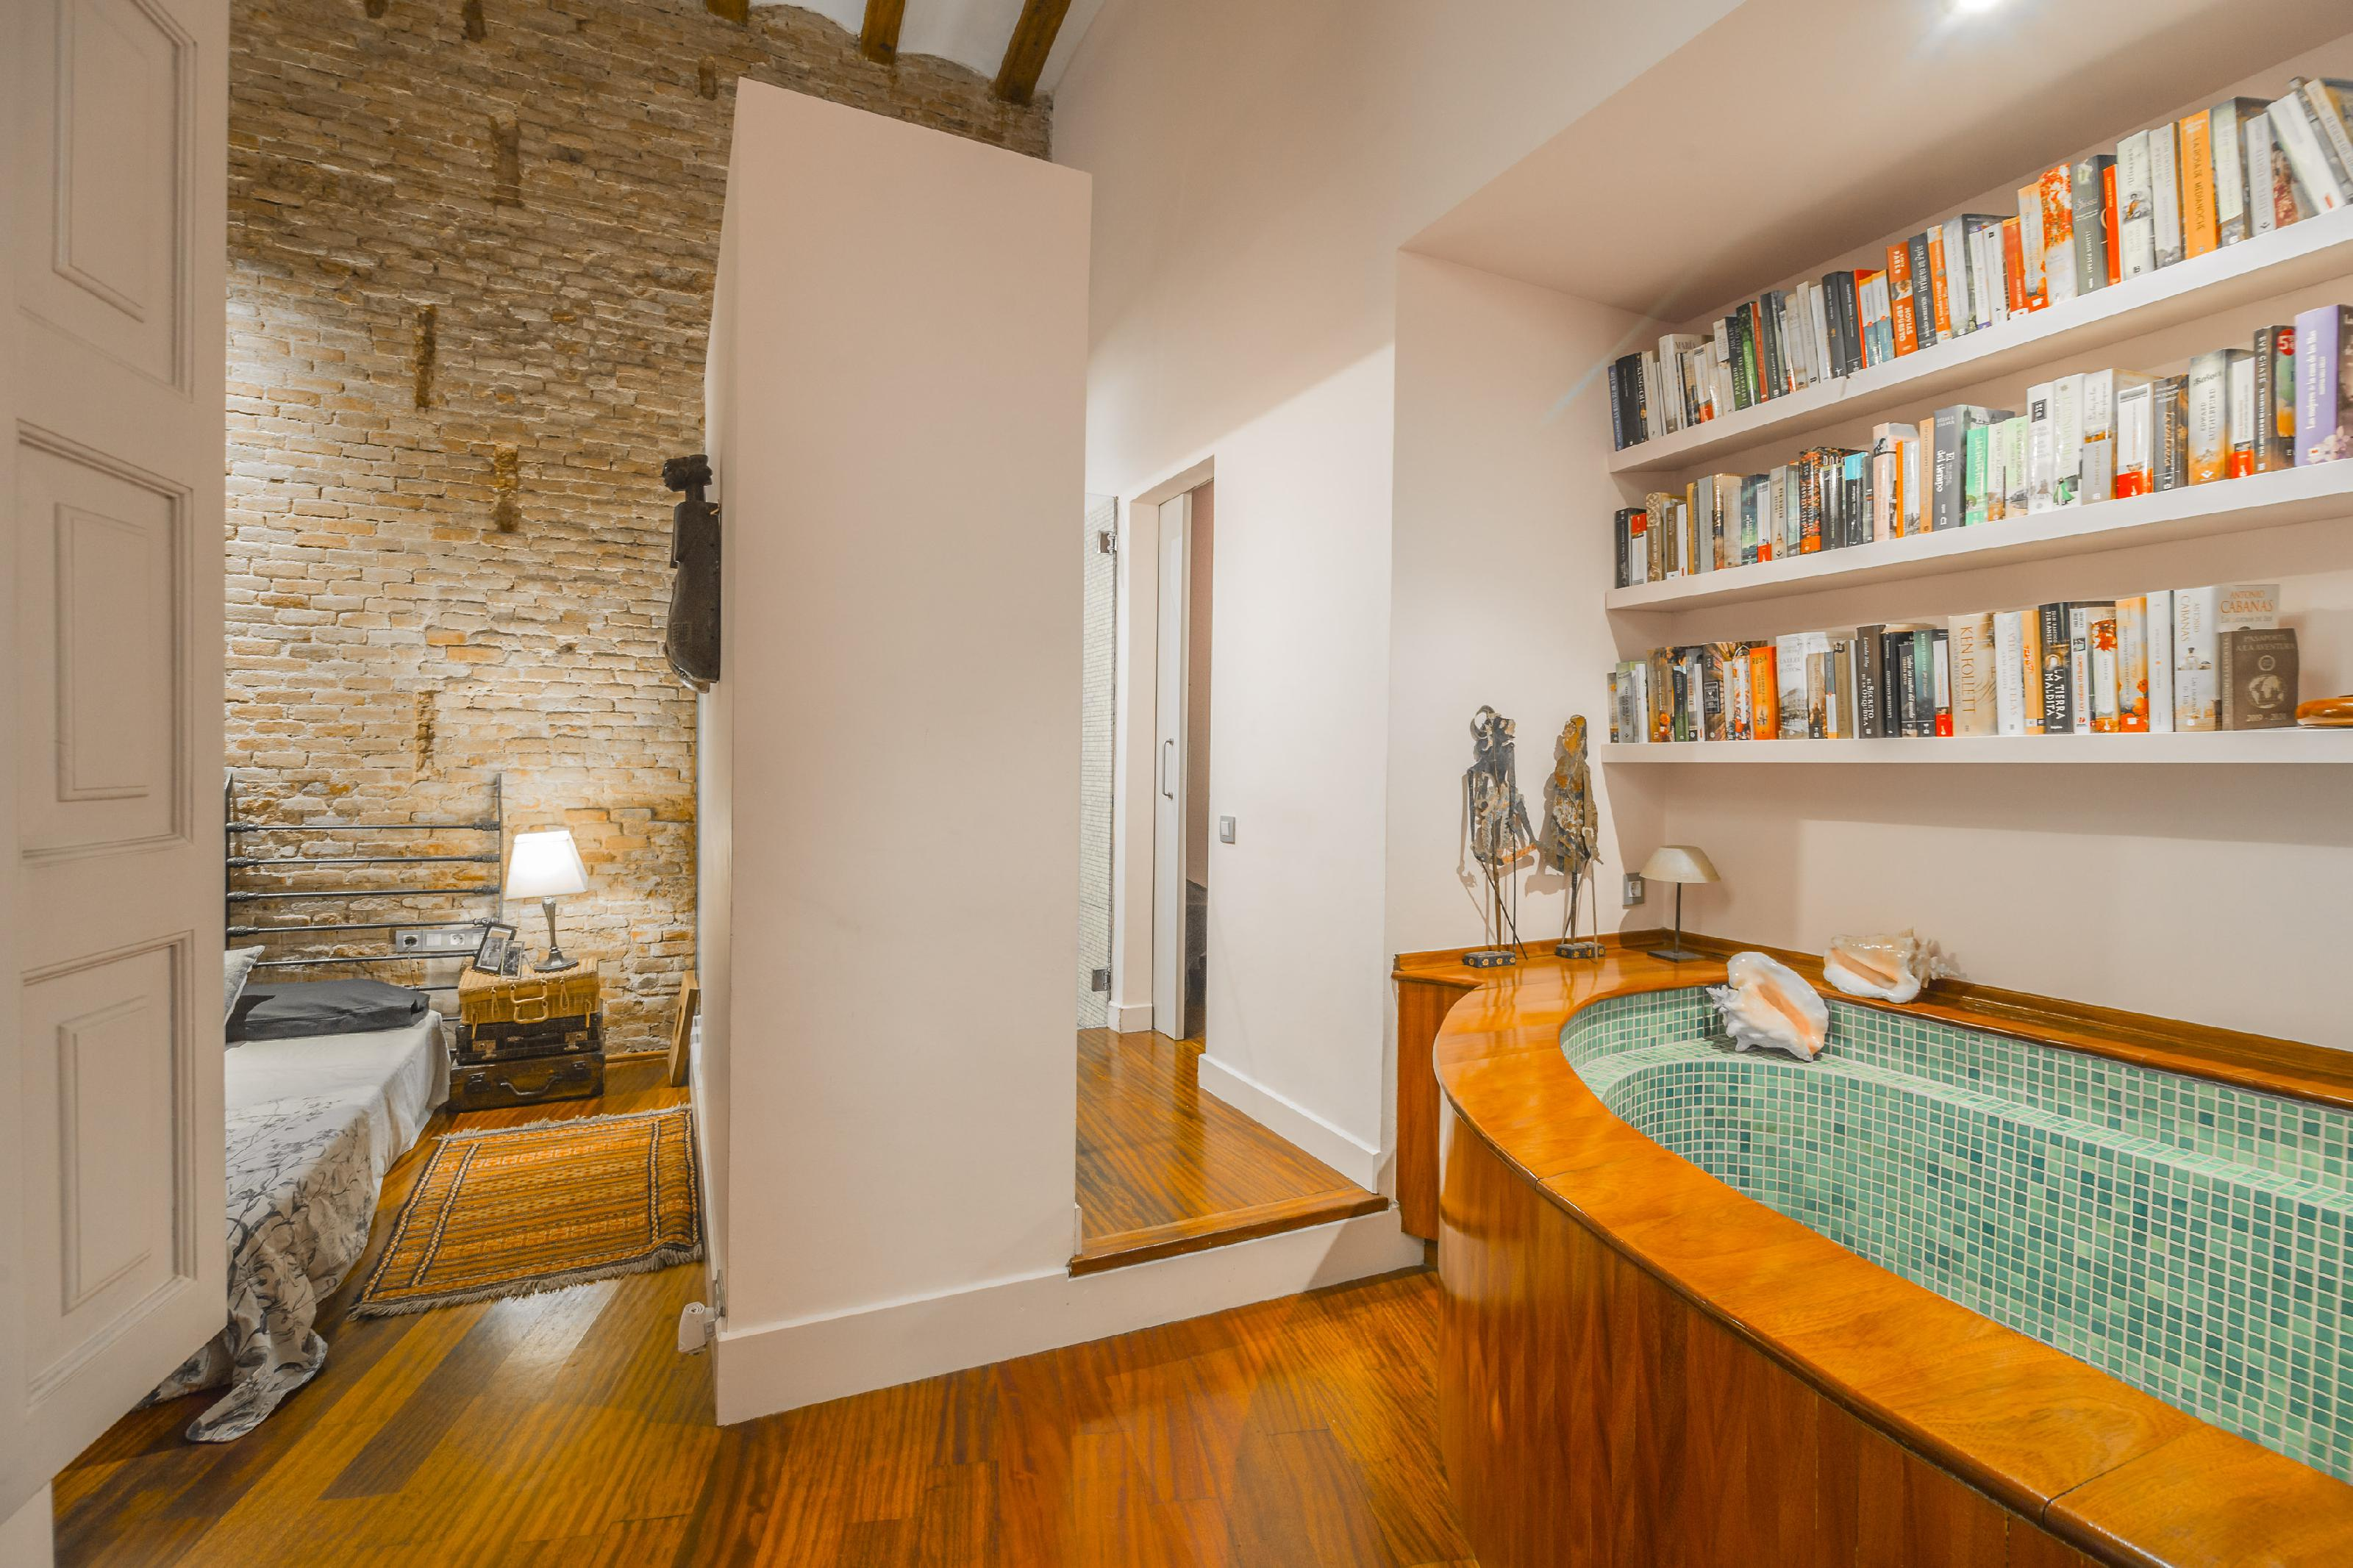 241111 Flat for sale in Ciutat Vella, Barri Gótic 30